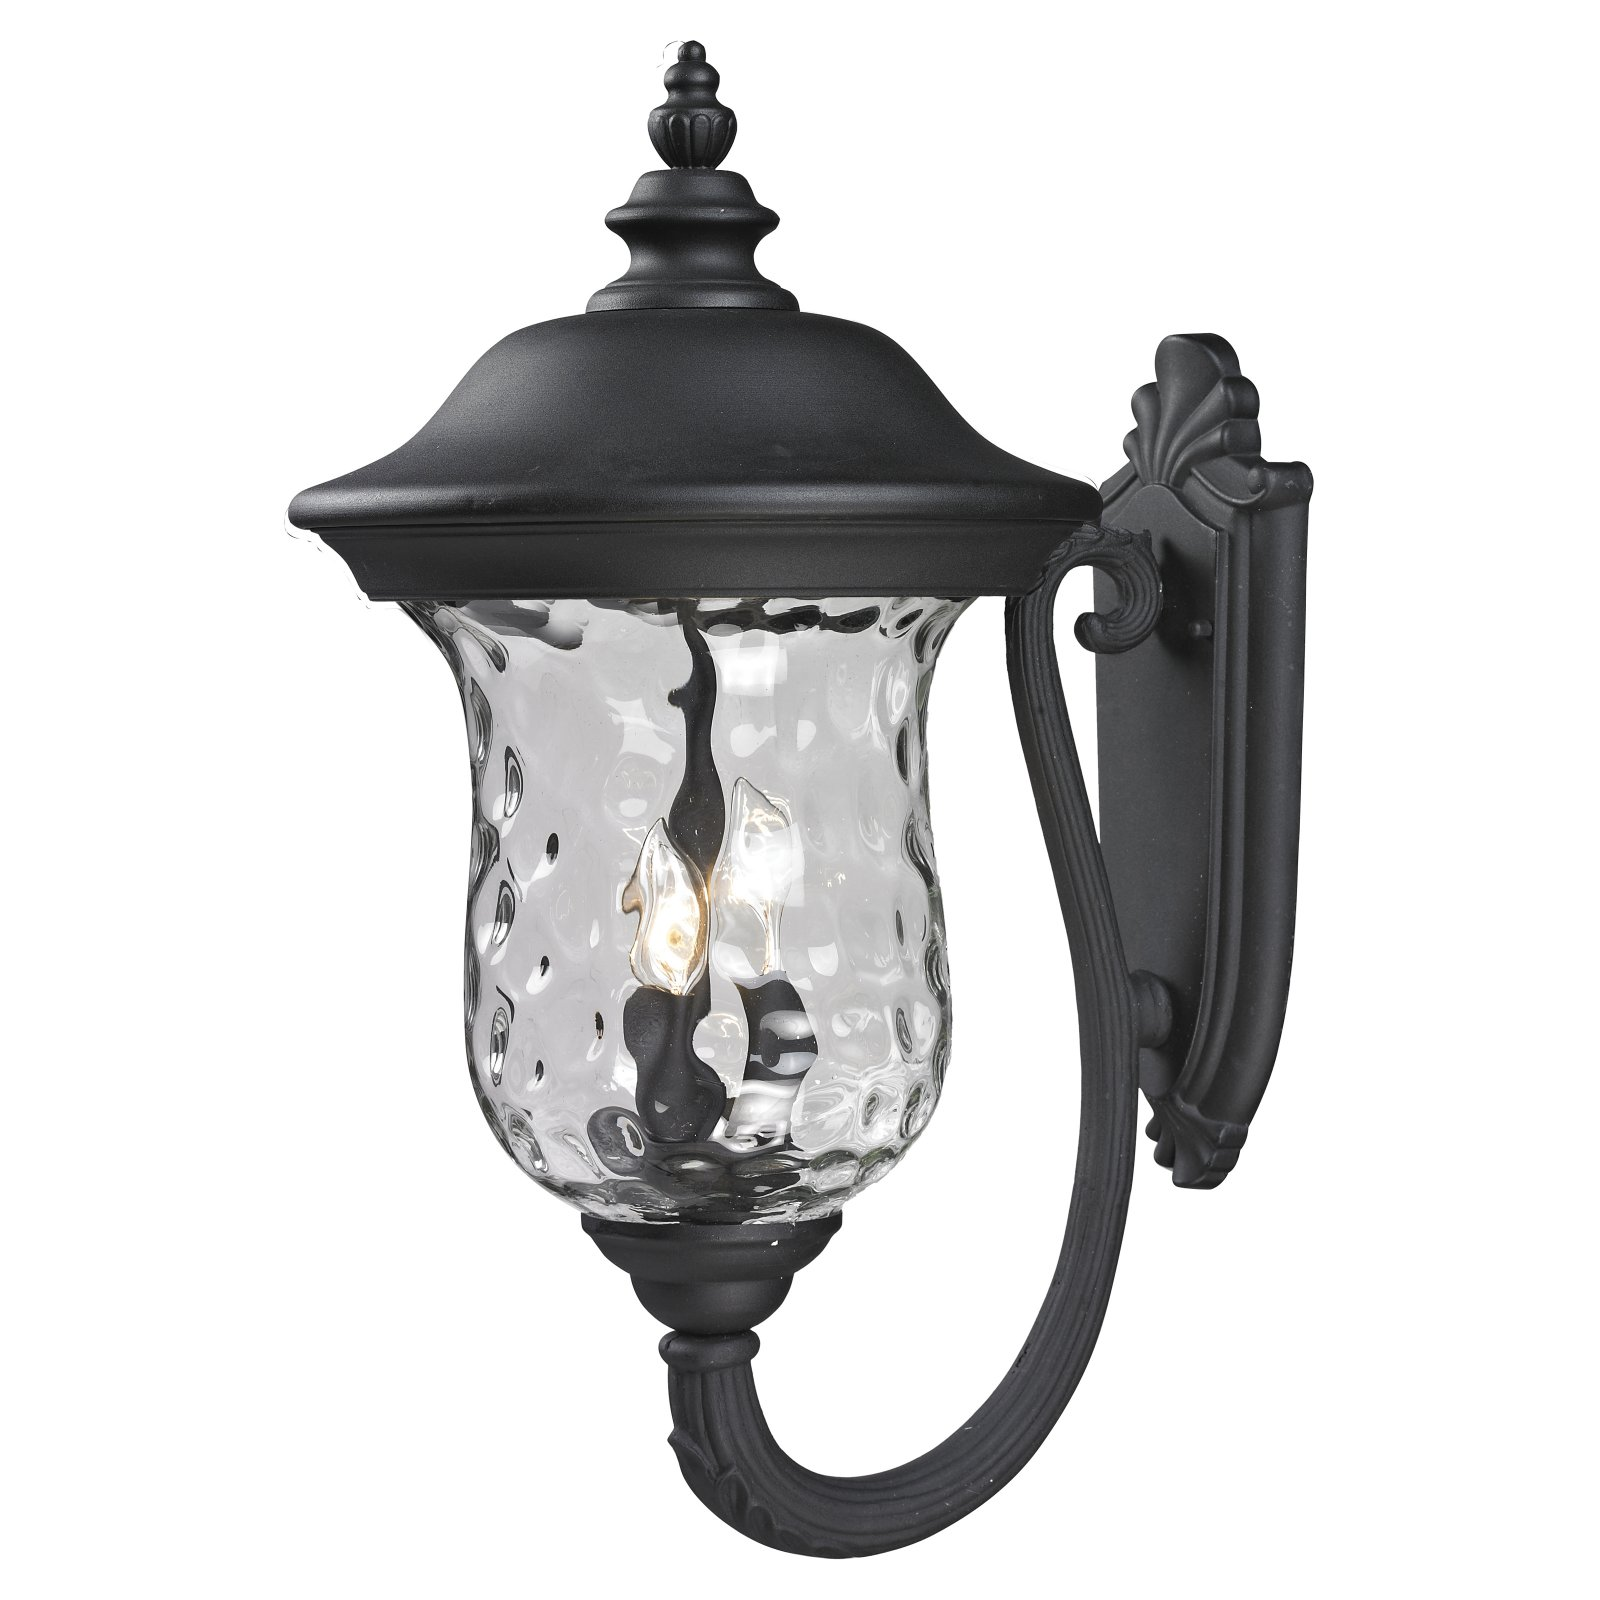 Z-Lite Armstrong Outdoor 3-Light Wall Sconce, Black by Z-Lite